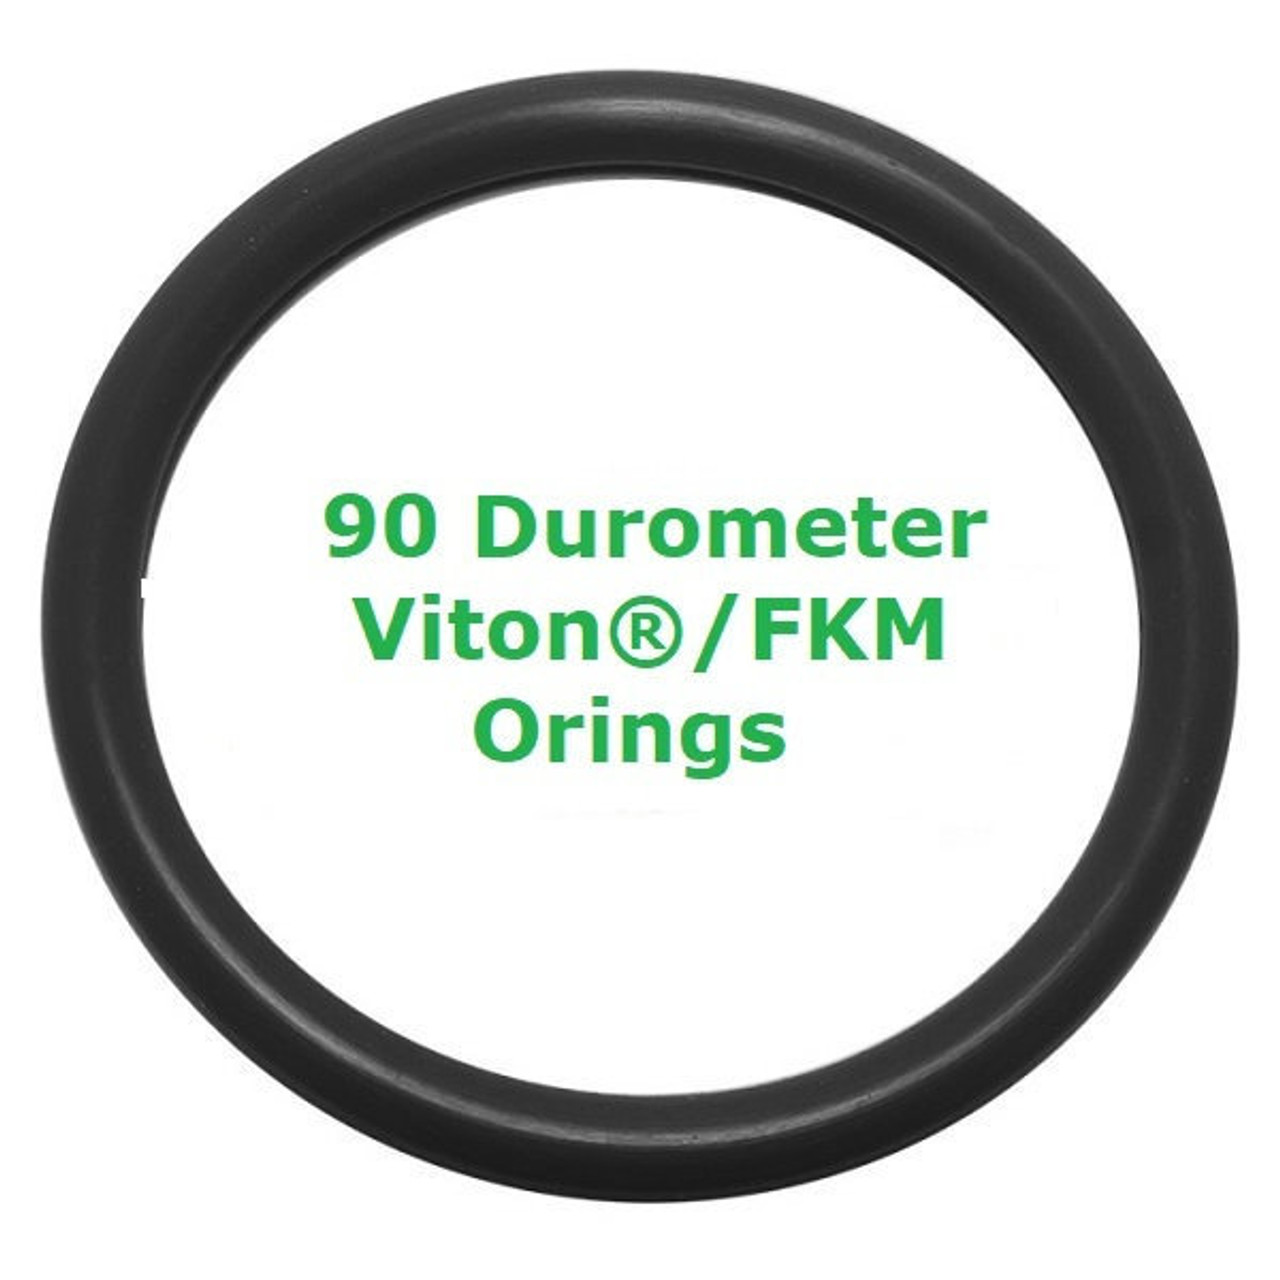 Viton 90 Orings Size 268 Price for 1 pc